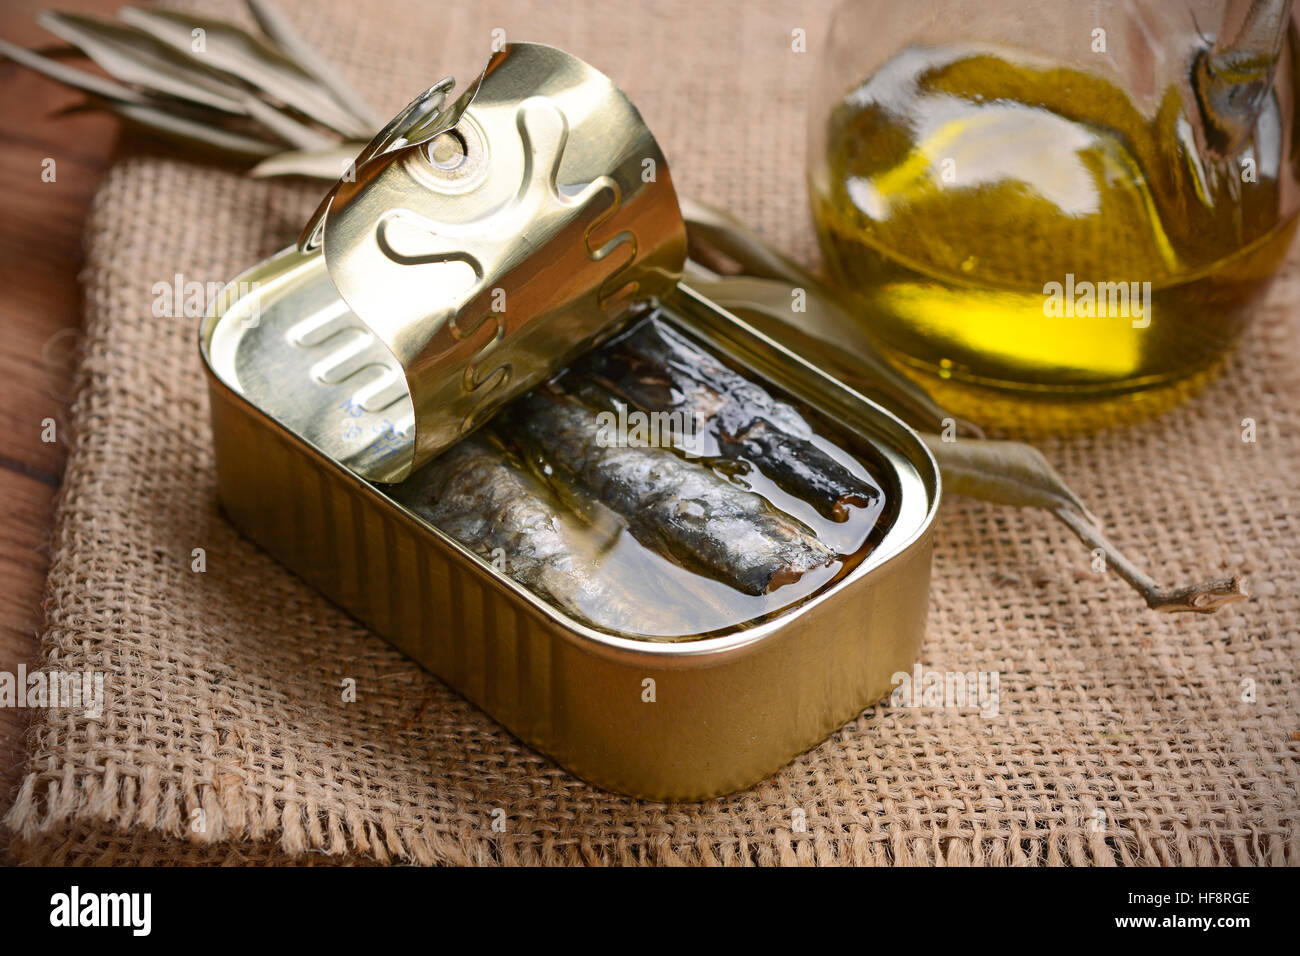 tinned anchovies in oil on the wooden table - Stock Image